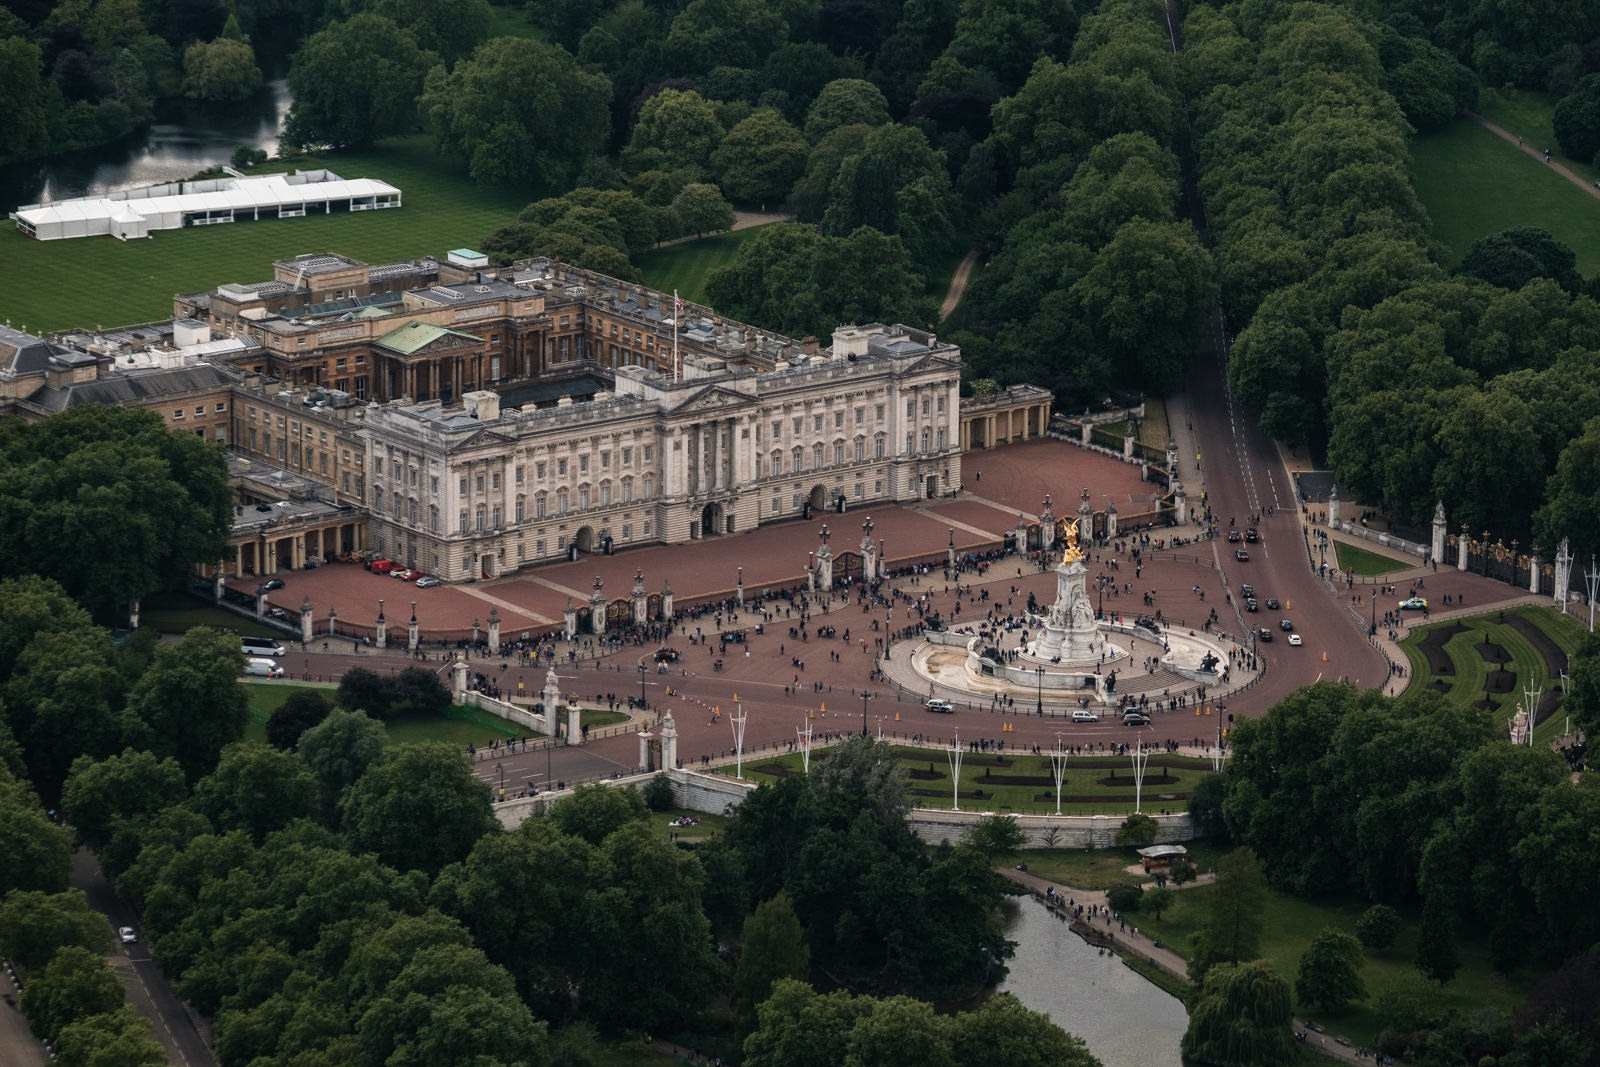 Buckingham Palace - with 50-140mm f2.8 @94mm, f4.5, iso250, 1/1000s